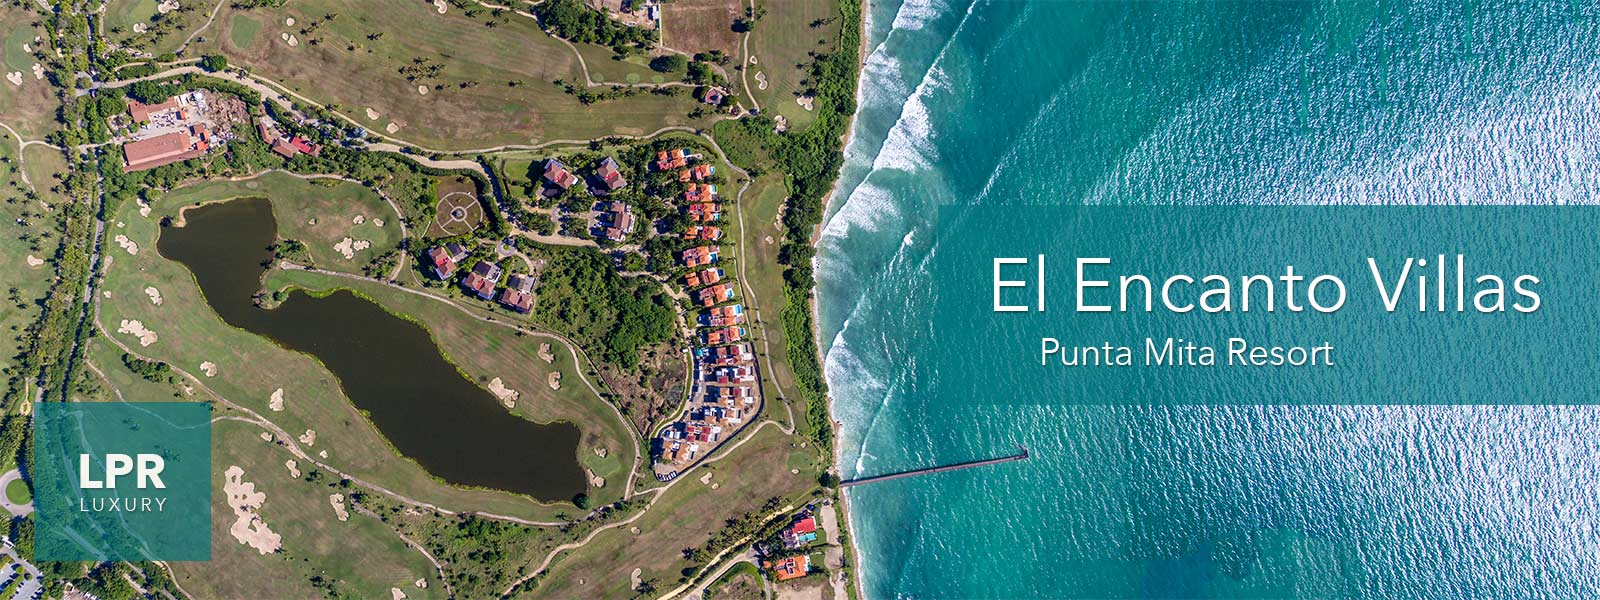 El Encanto Villas at the Punta Mita Mexico Real Estate for Sale